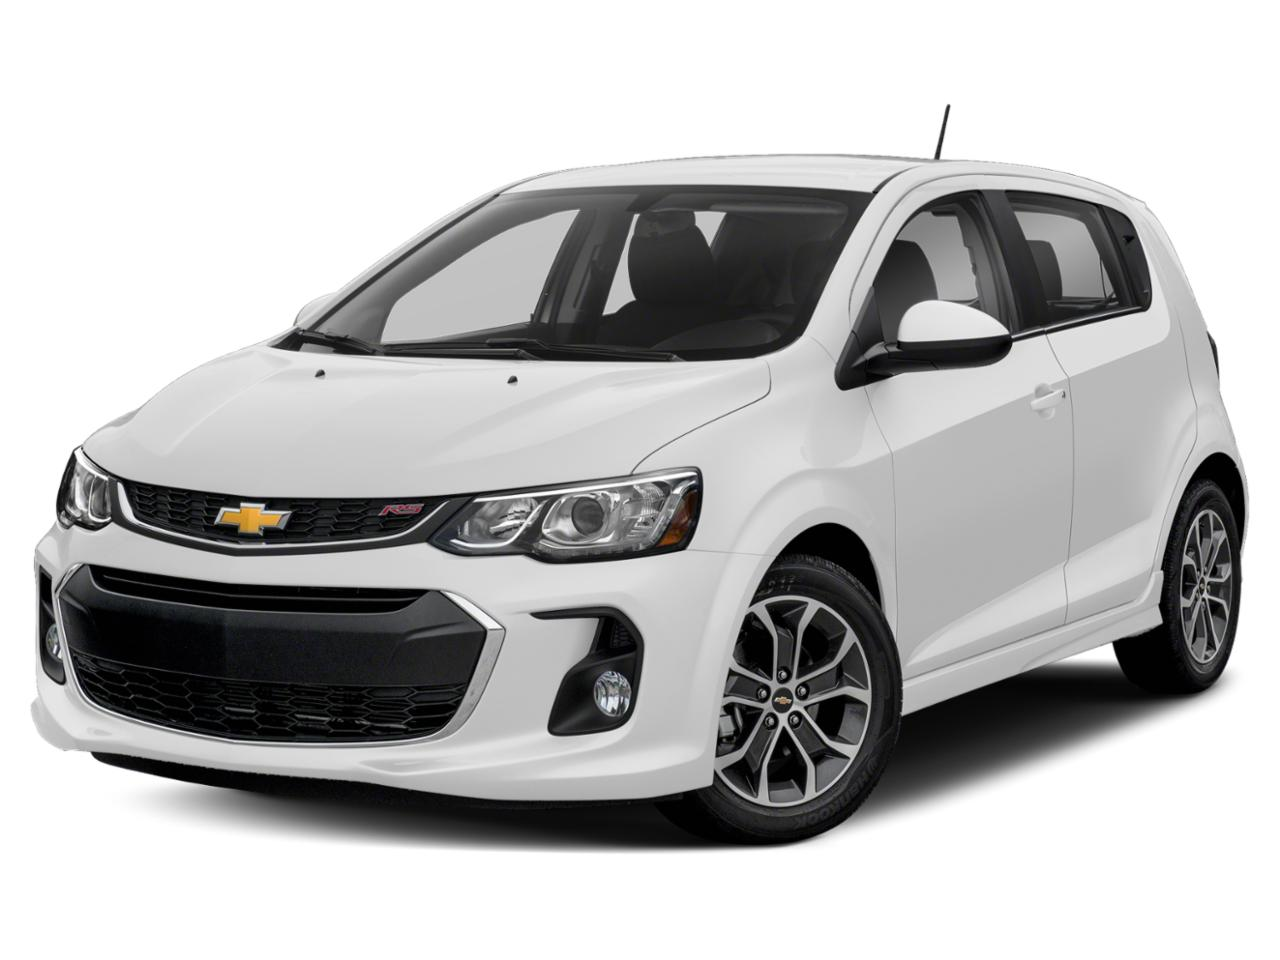 2020 Chevrolet Sonic Vehicle Photo in Terryville, CT 06786